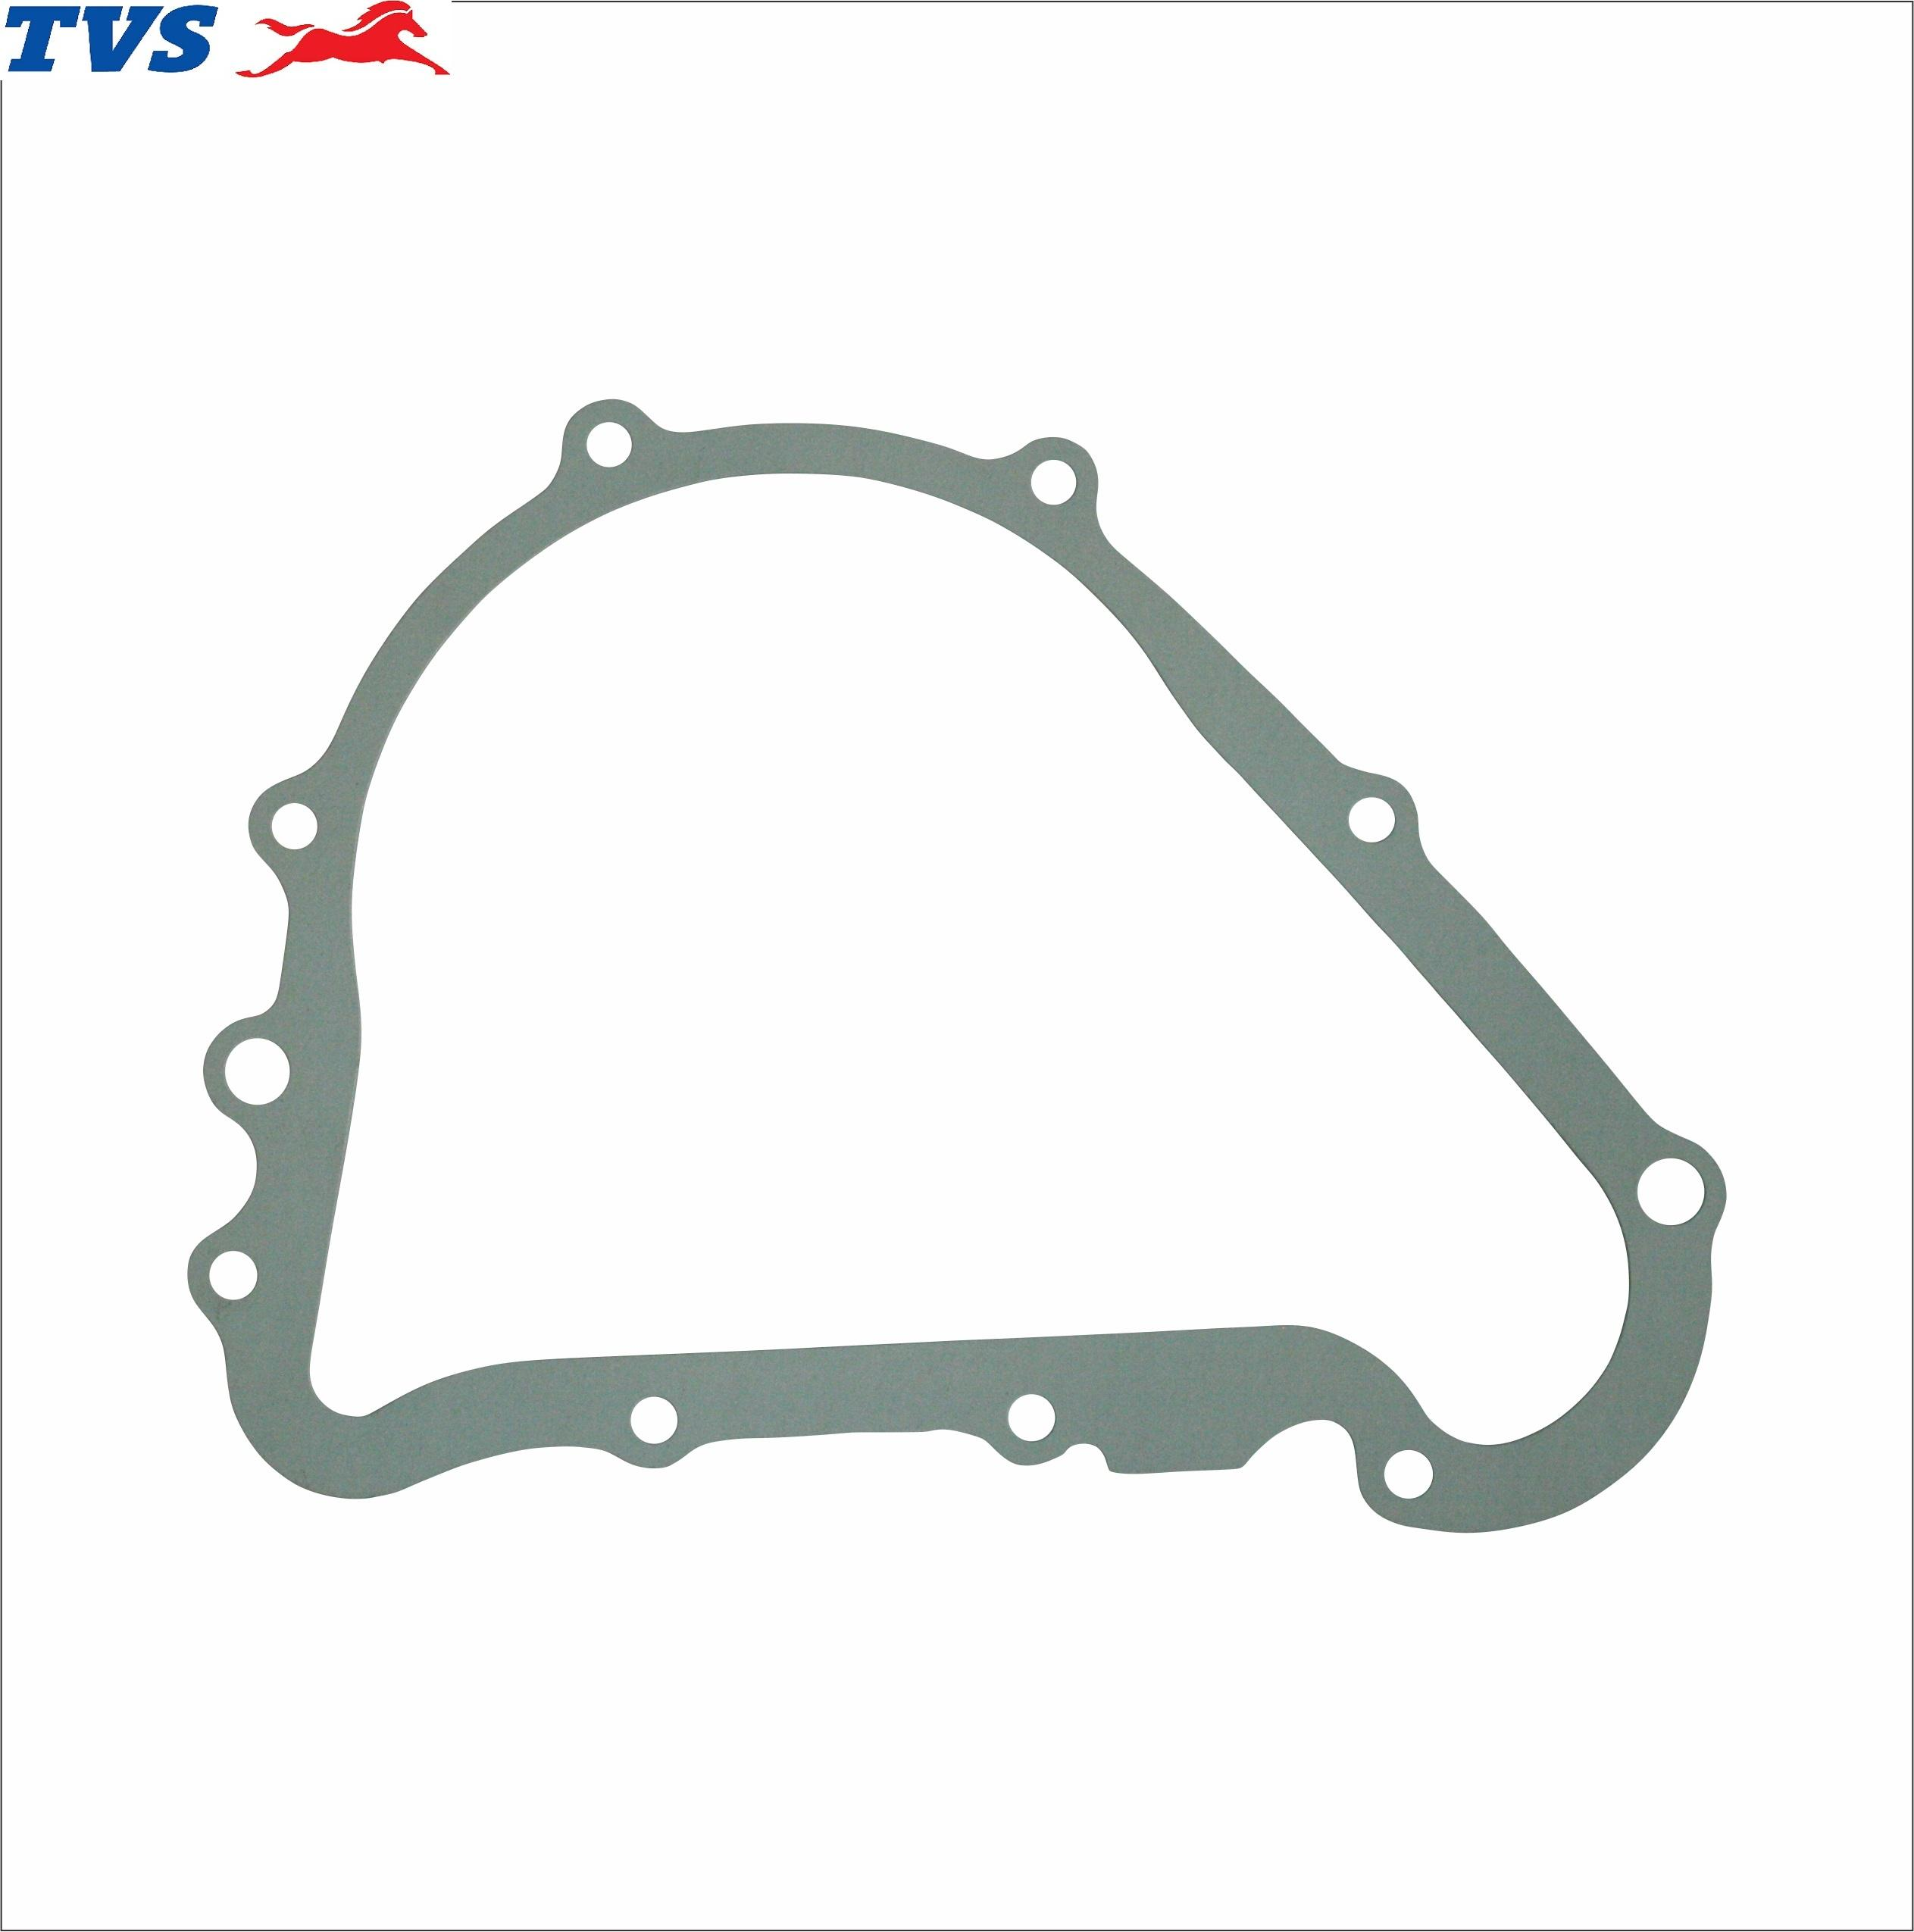 Tvs Apache 150-180 - Gasket Magneto Cover Cover ( P.no. M1080320 ) Tvs Motorcycle Genuine Parts By Tvs Genuine Parts ( Tvs Global ).